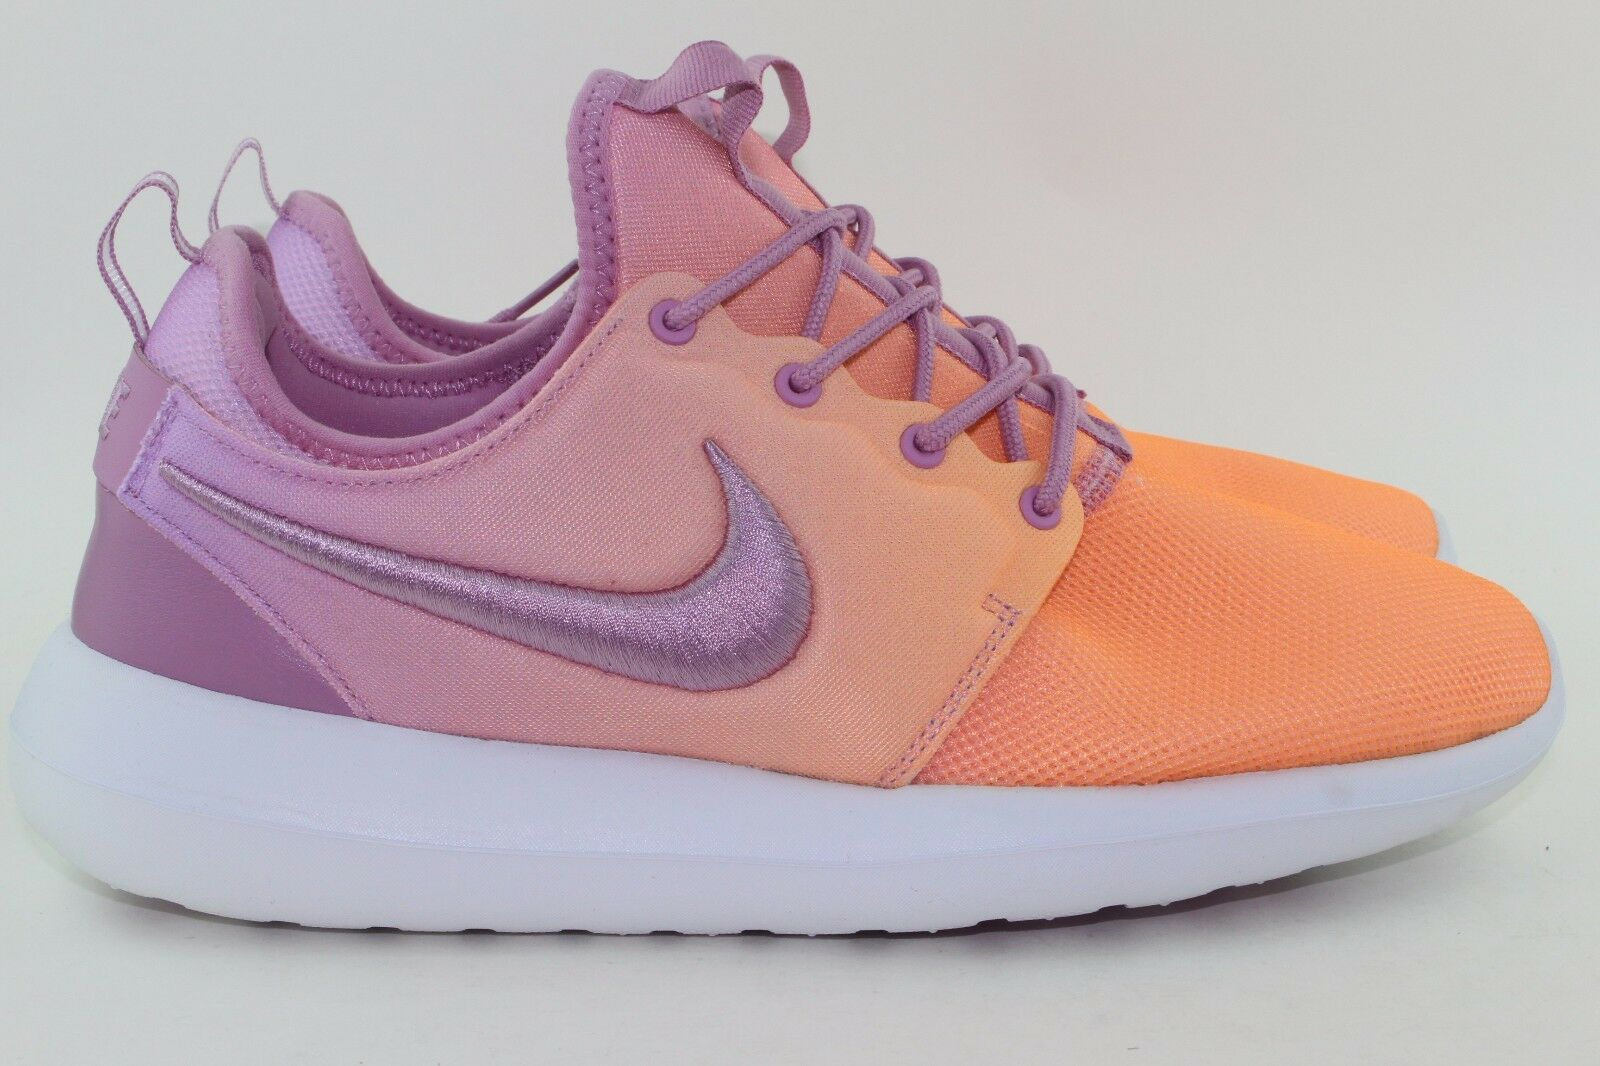 ROSHE TWO BR WOMAN SIZE 11.0 NEW SUNSET GLOW NEW RARE AUTHENTIC LIGHTWEIGHT